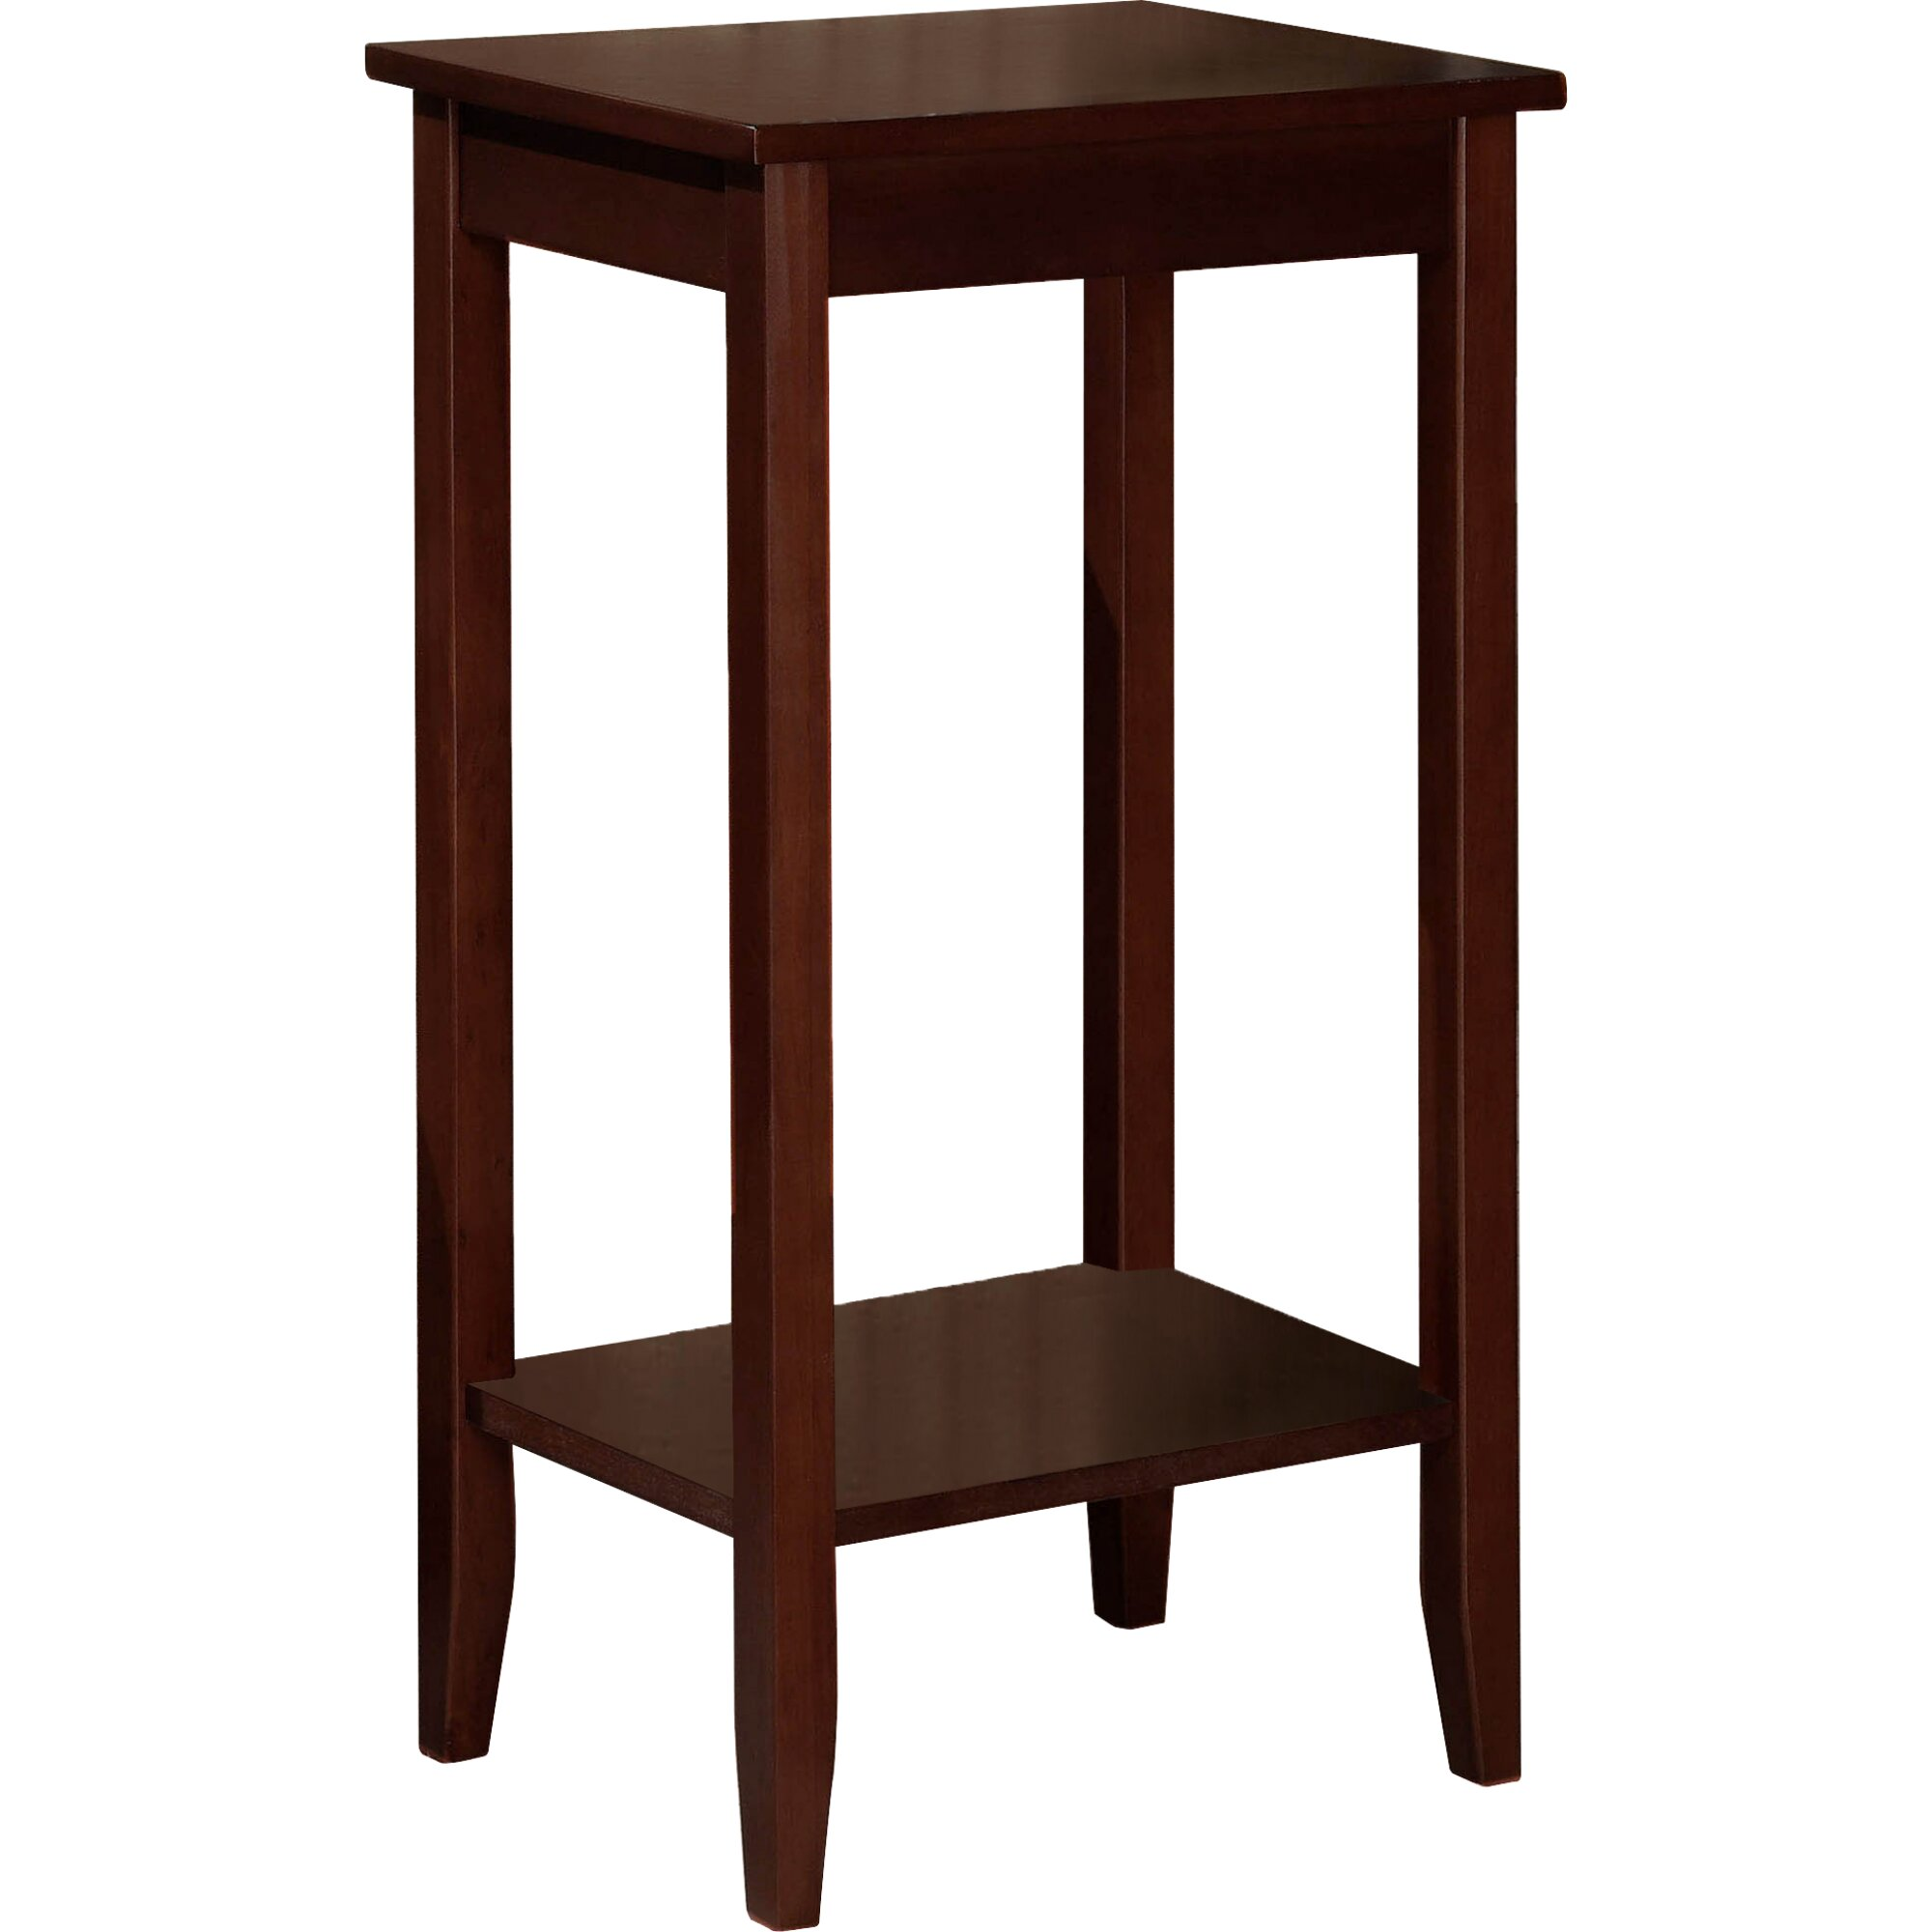 Dhp rosewood tall end table reviews wayfair for Tall side table